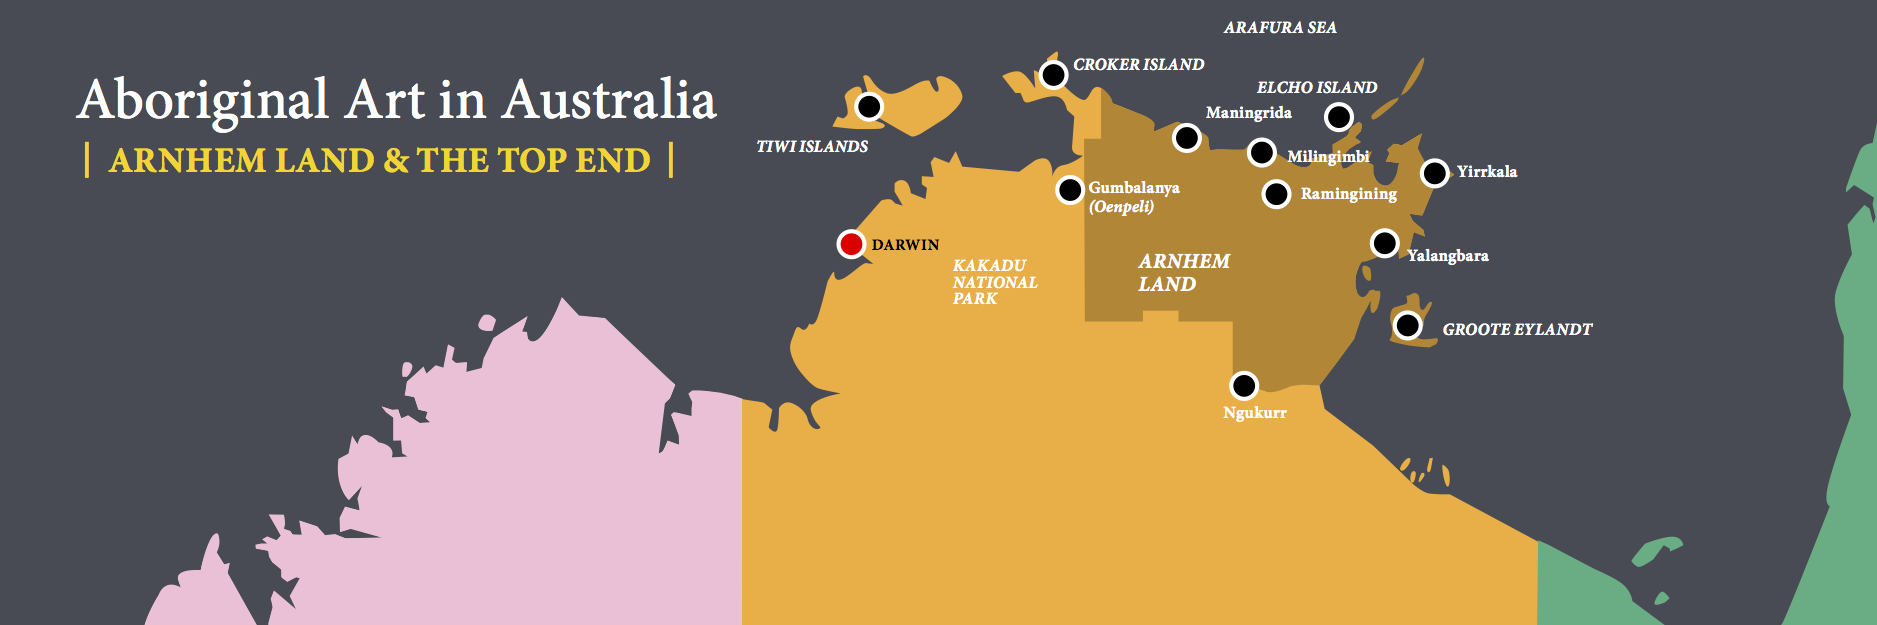 LDFA_Website Maps_8 copy - 2 Arnhem Land & The Top End